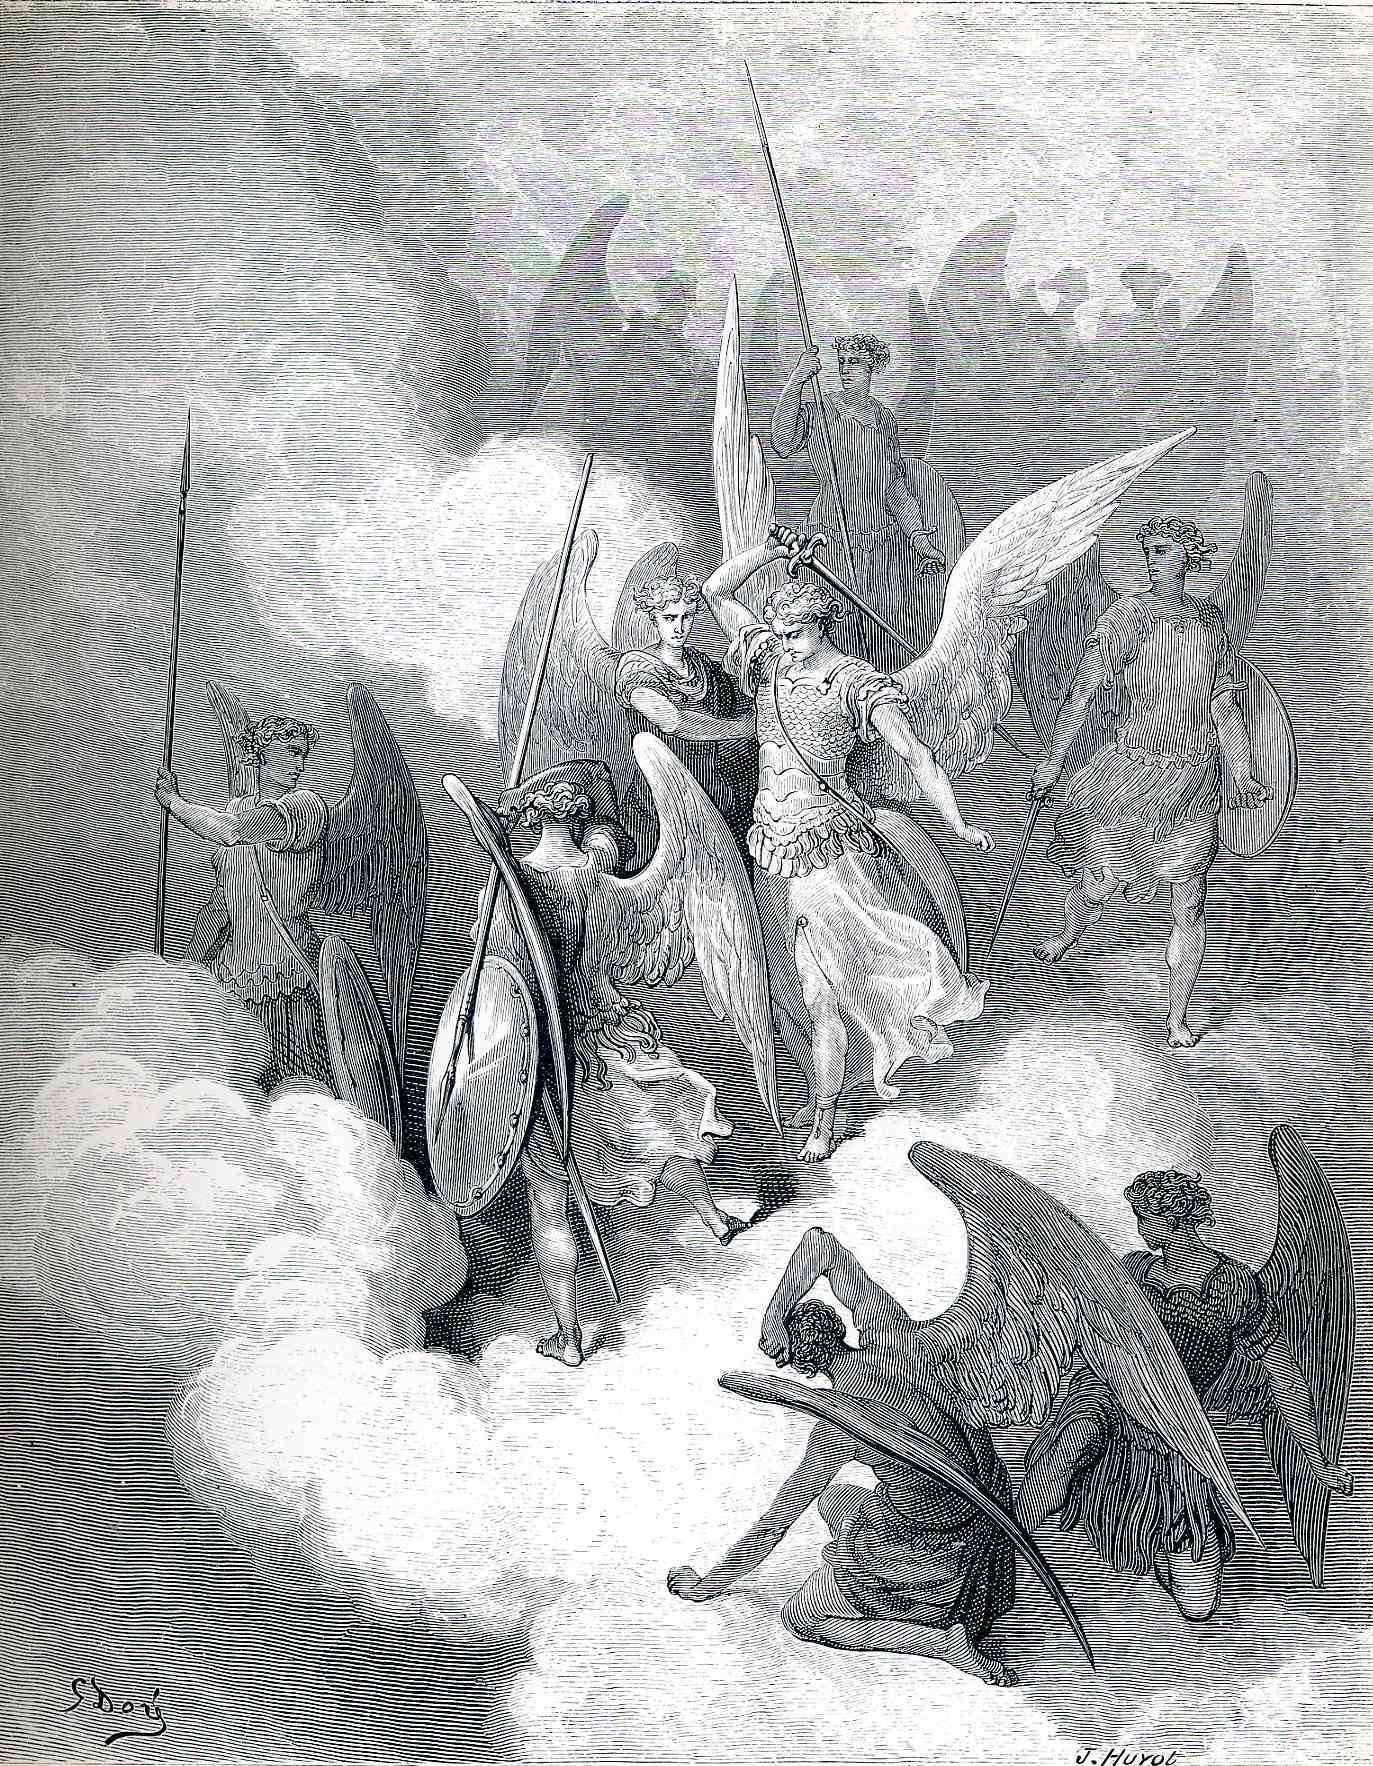 paradise lost satan hero or villain Paradise lost: satan hero or villain essay satan: epic hero or villain john milton wrote one of the greatest epic poems of all time when he wrote paradise lost in.